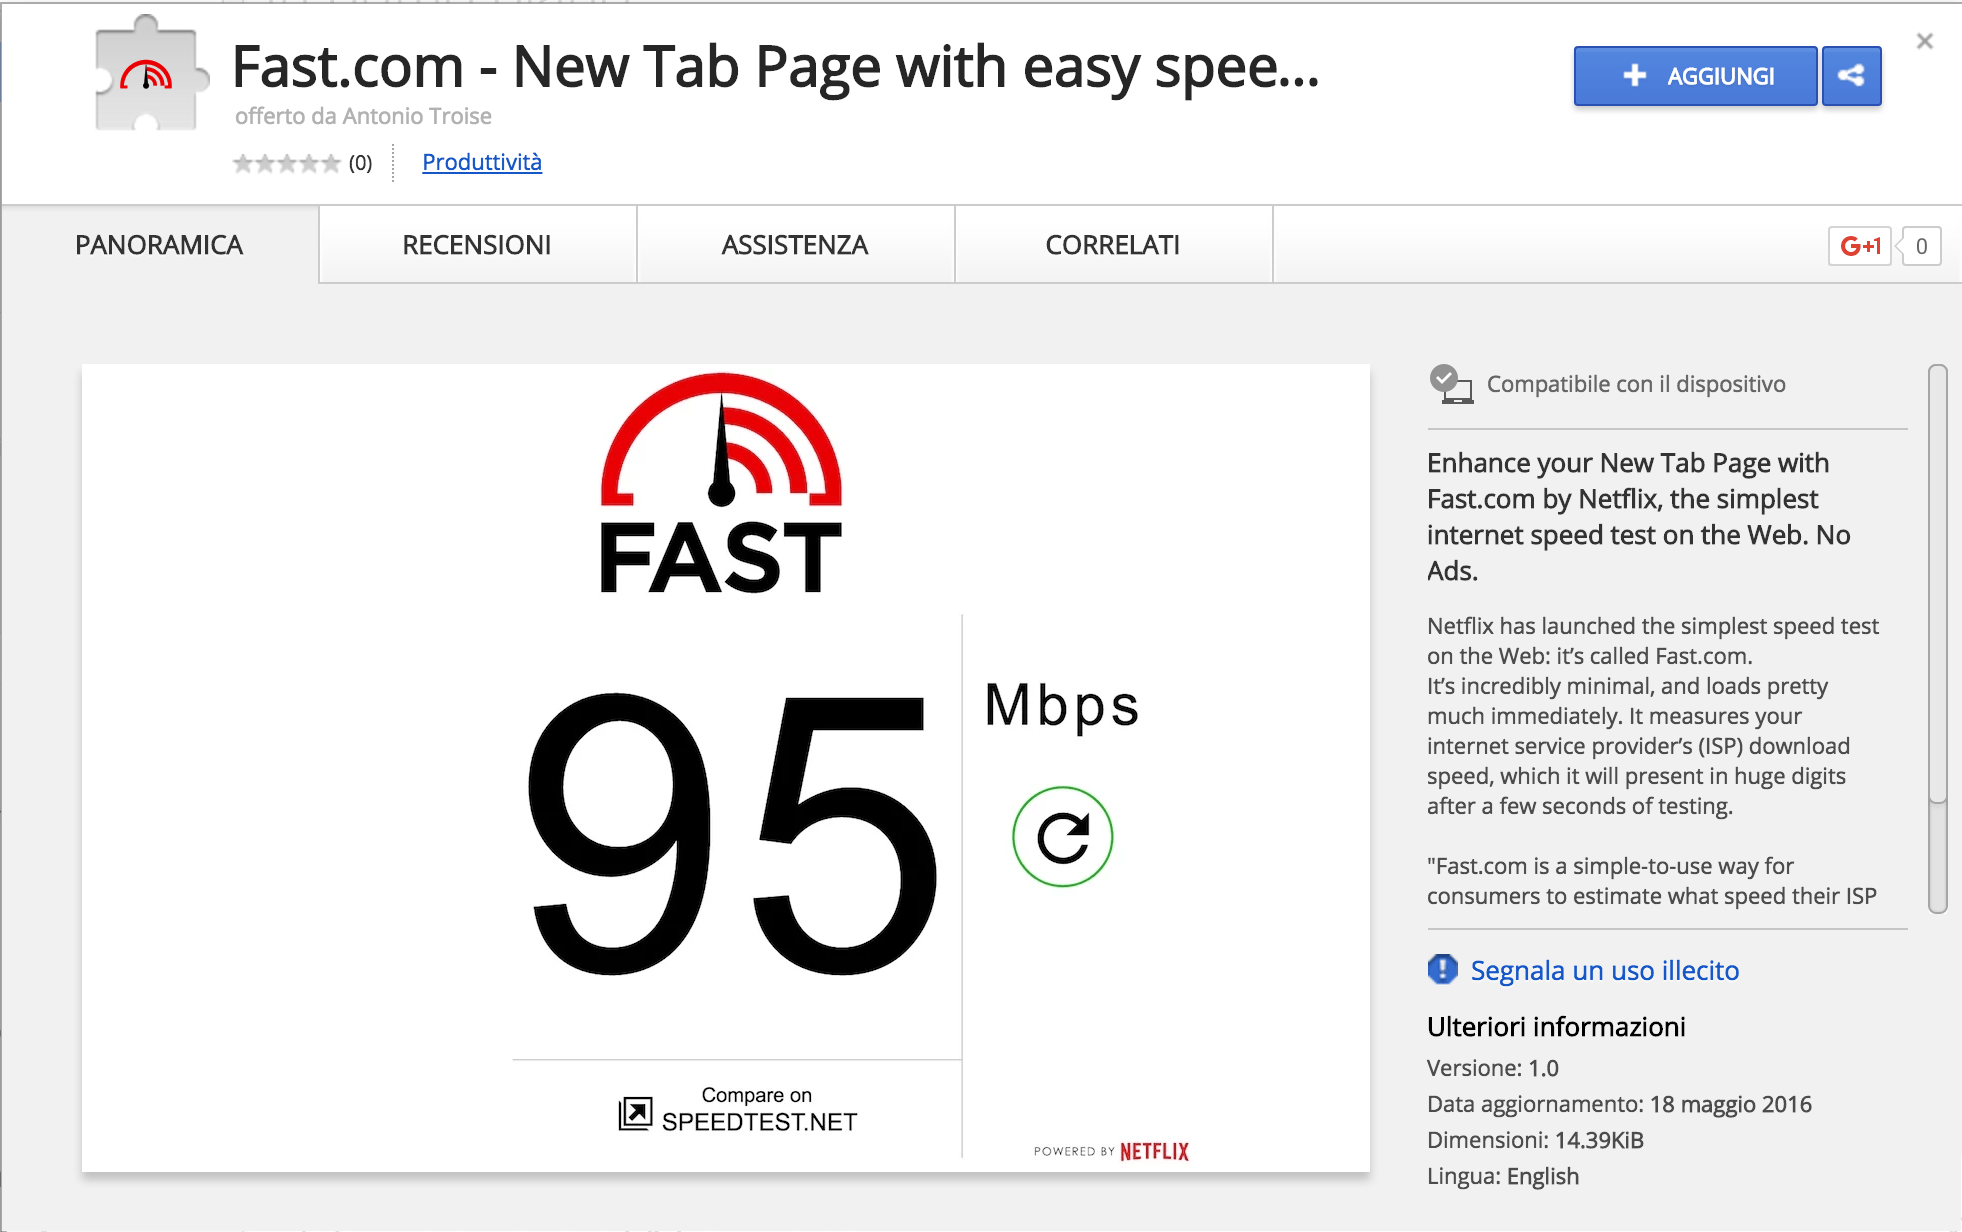 Fast.com - New Tab Page with easy speed test